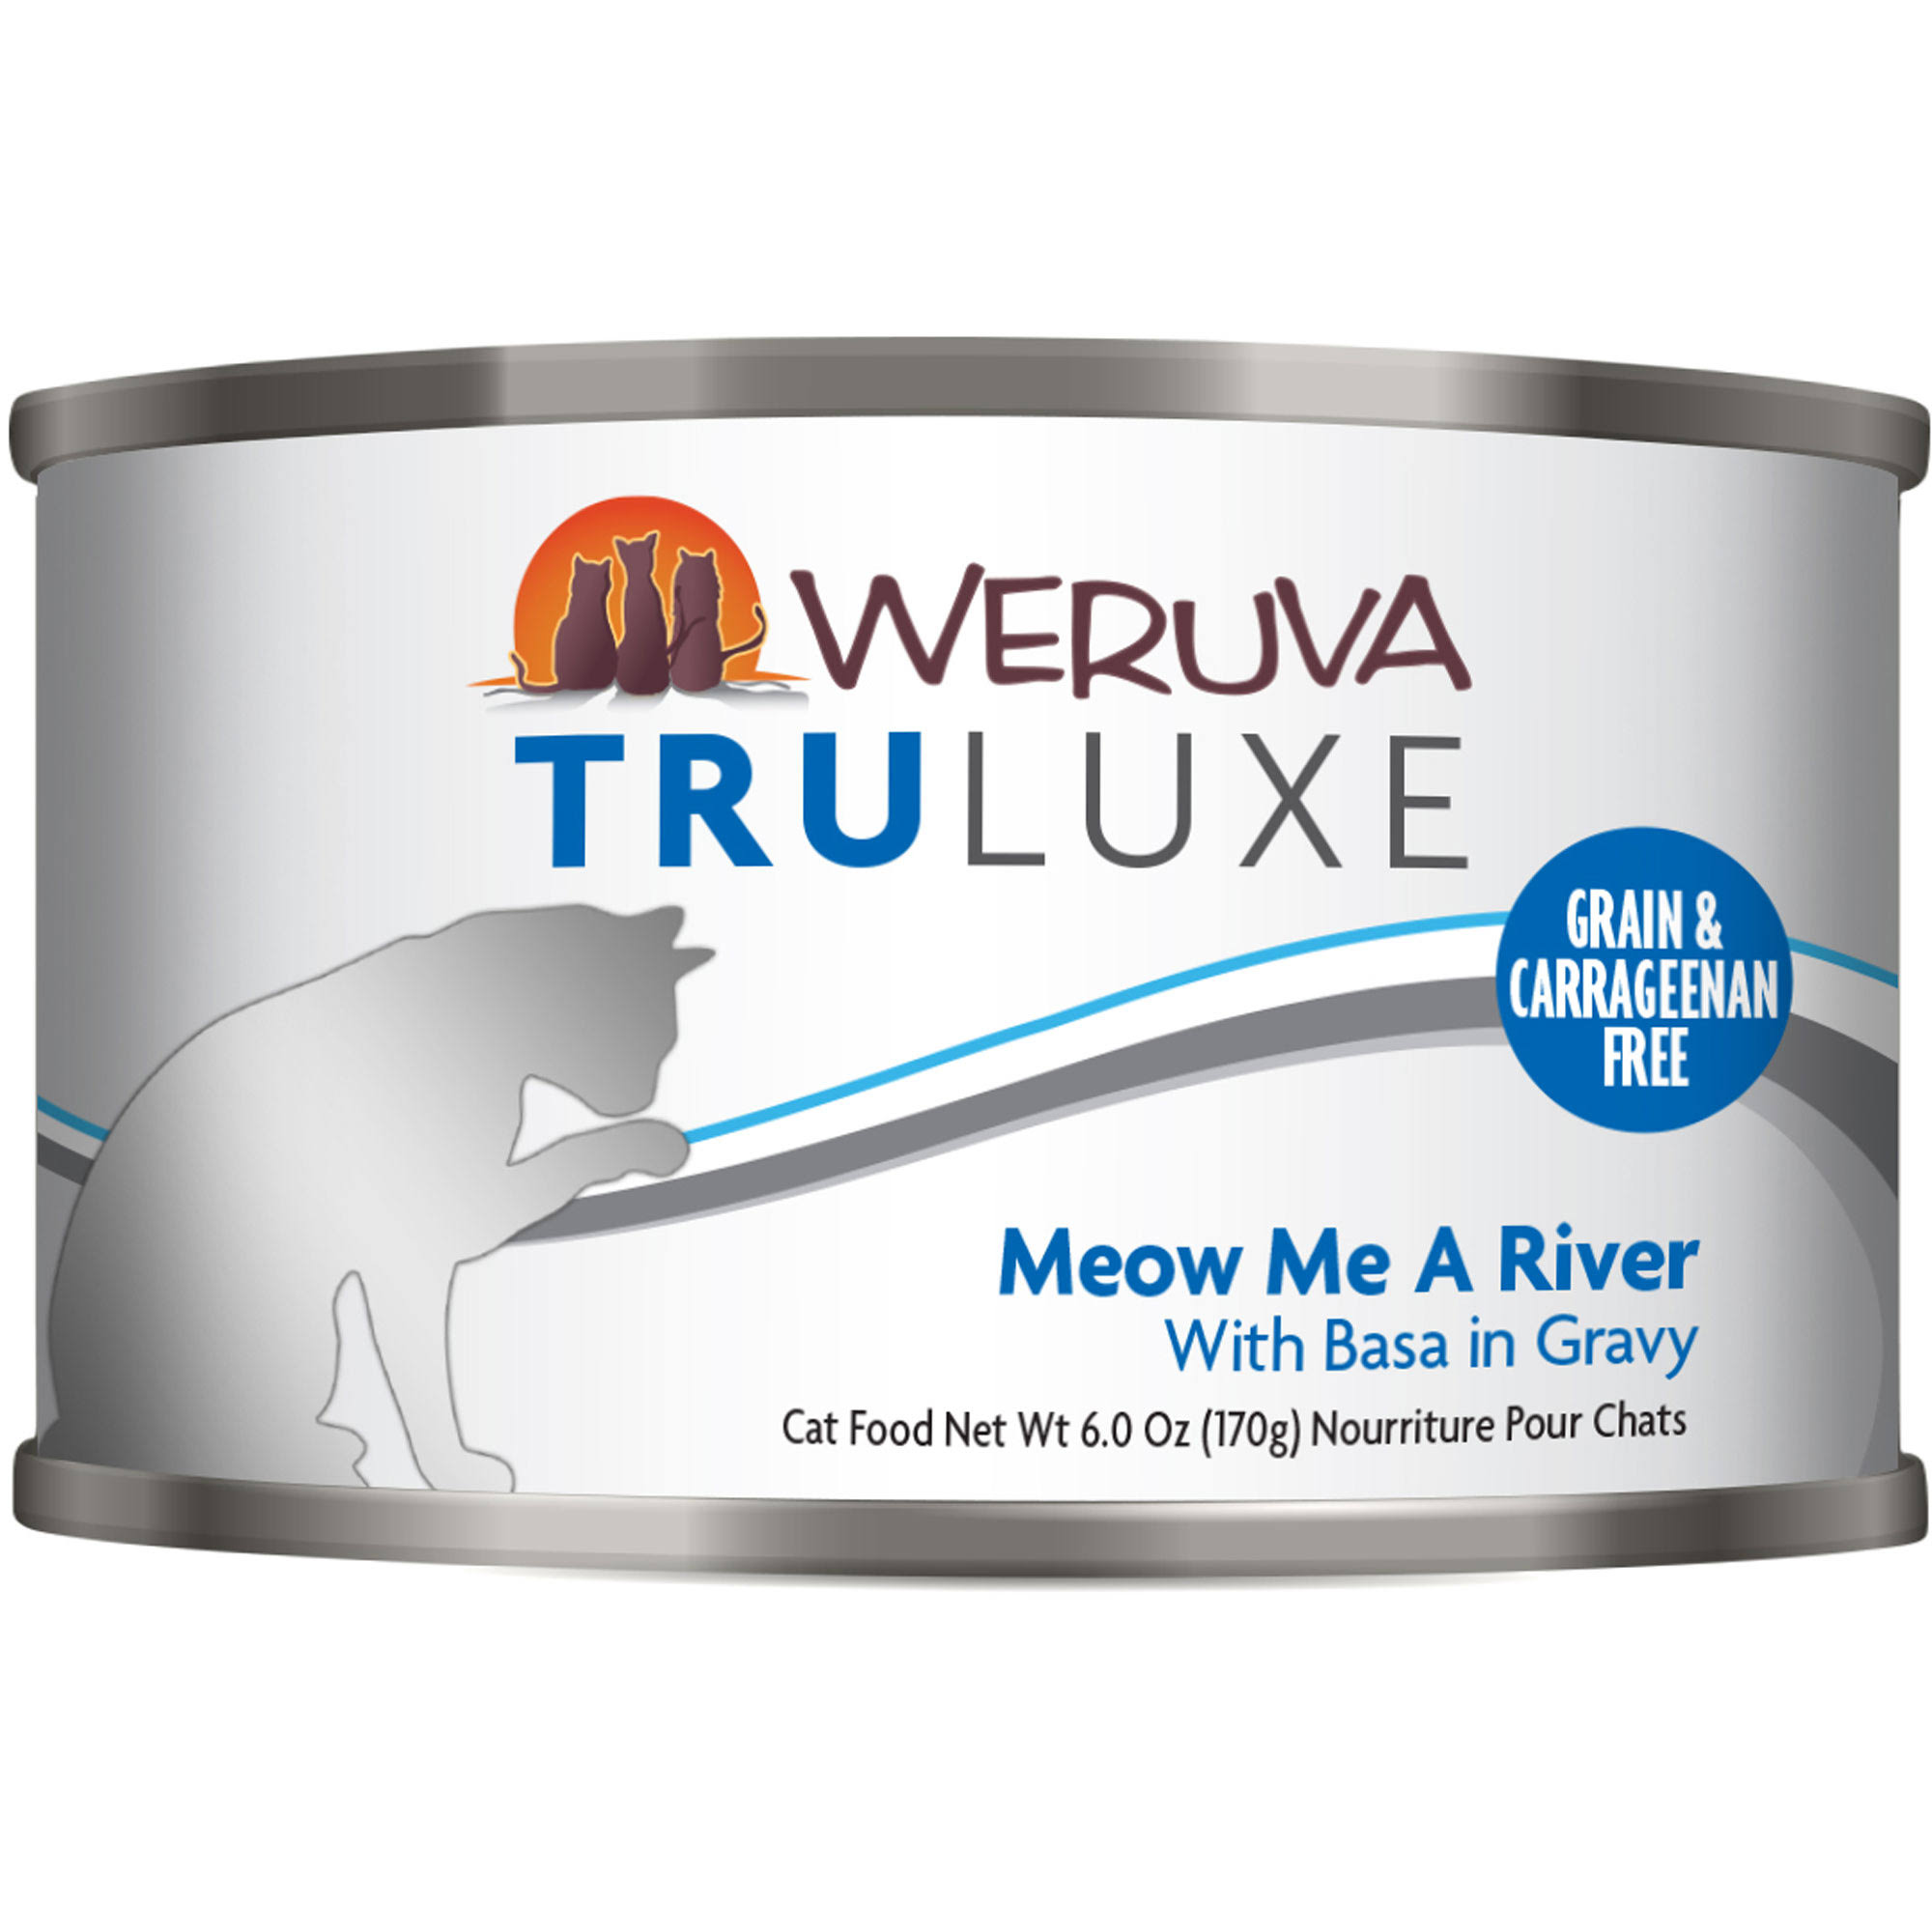 Weruva Truluxe Cat Food - Meow Me A River With Basa In Gravy